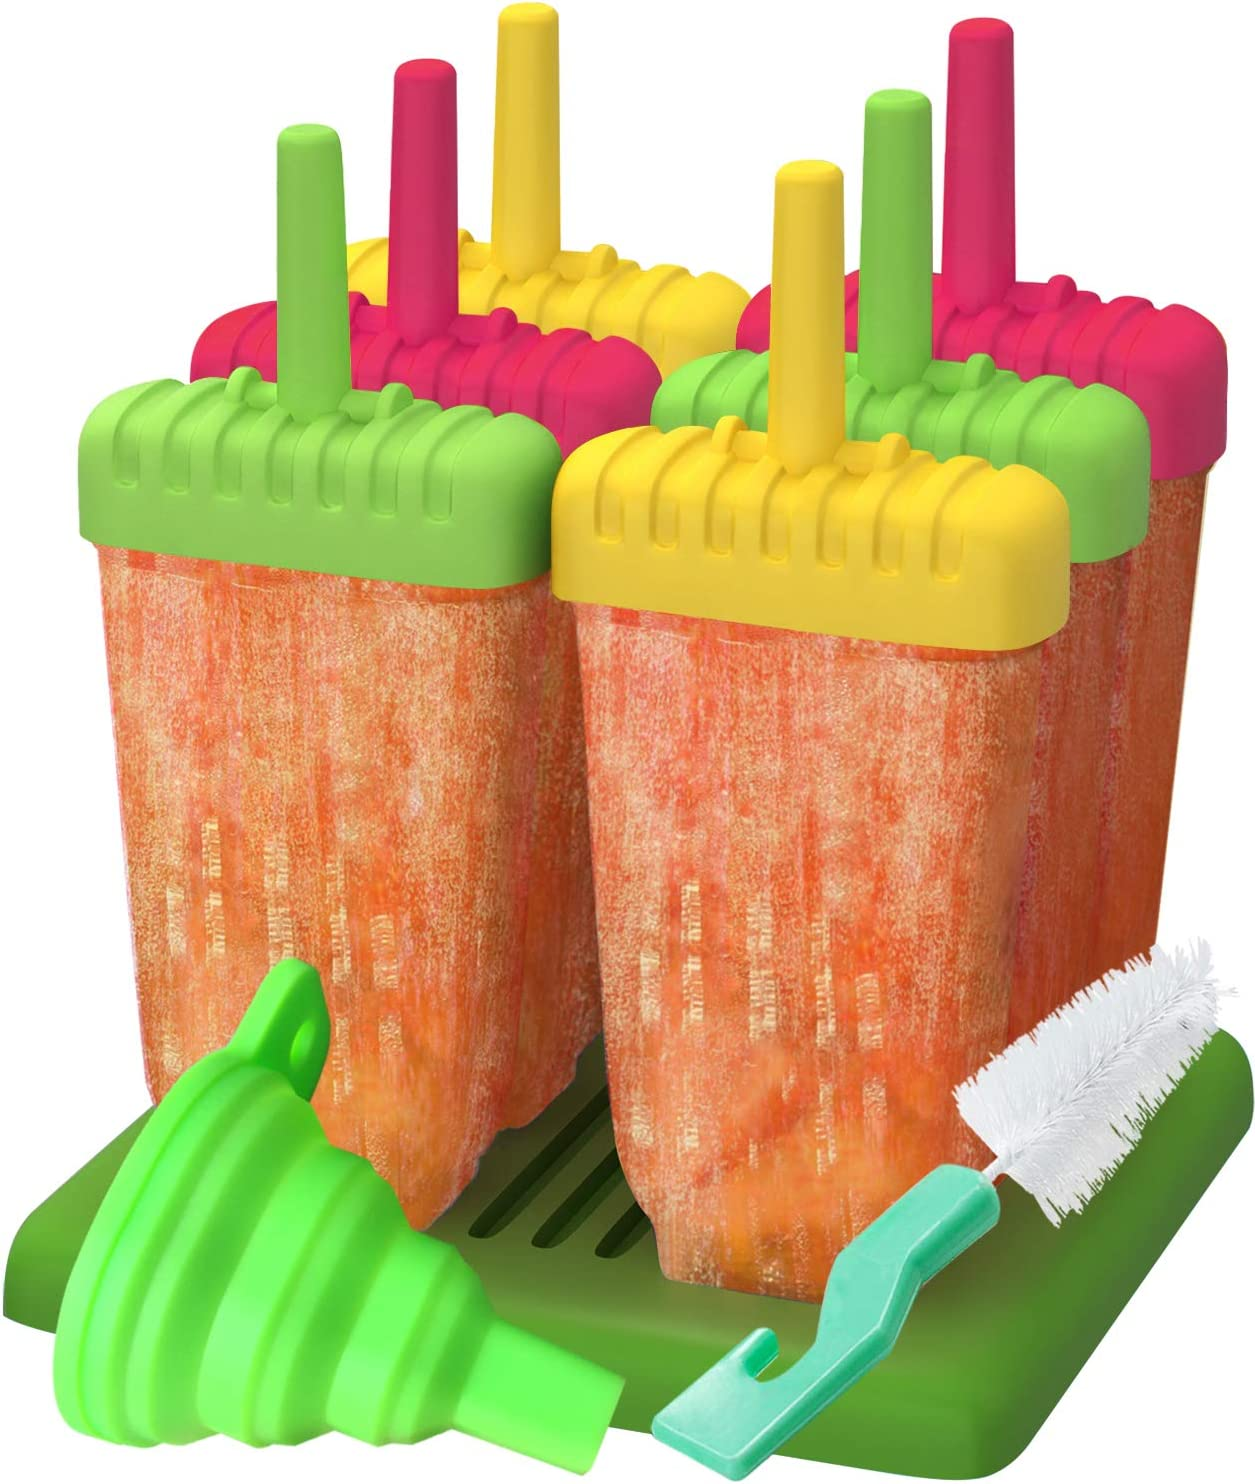 Popsicle Molds, Ozera Set of 6 Reusable Ice Pop Molds Popsicle Maker, Come with Silicone Funnel & Cleaning Brush